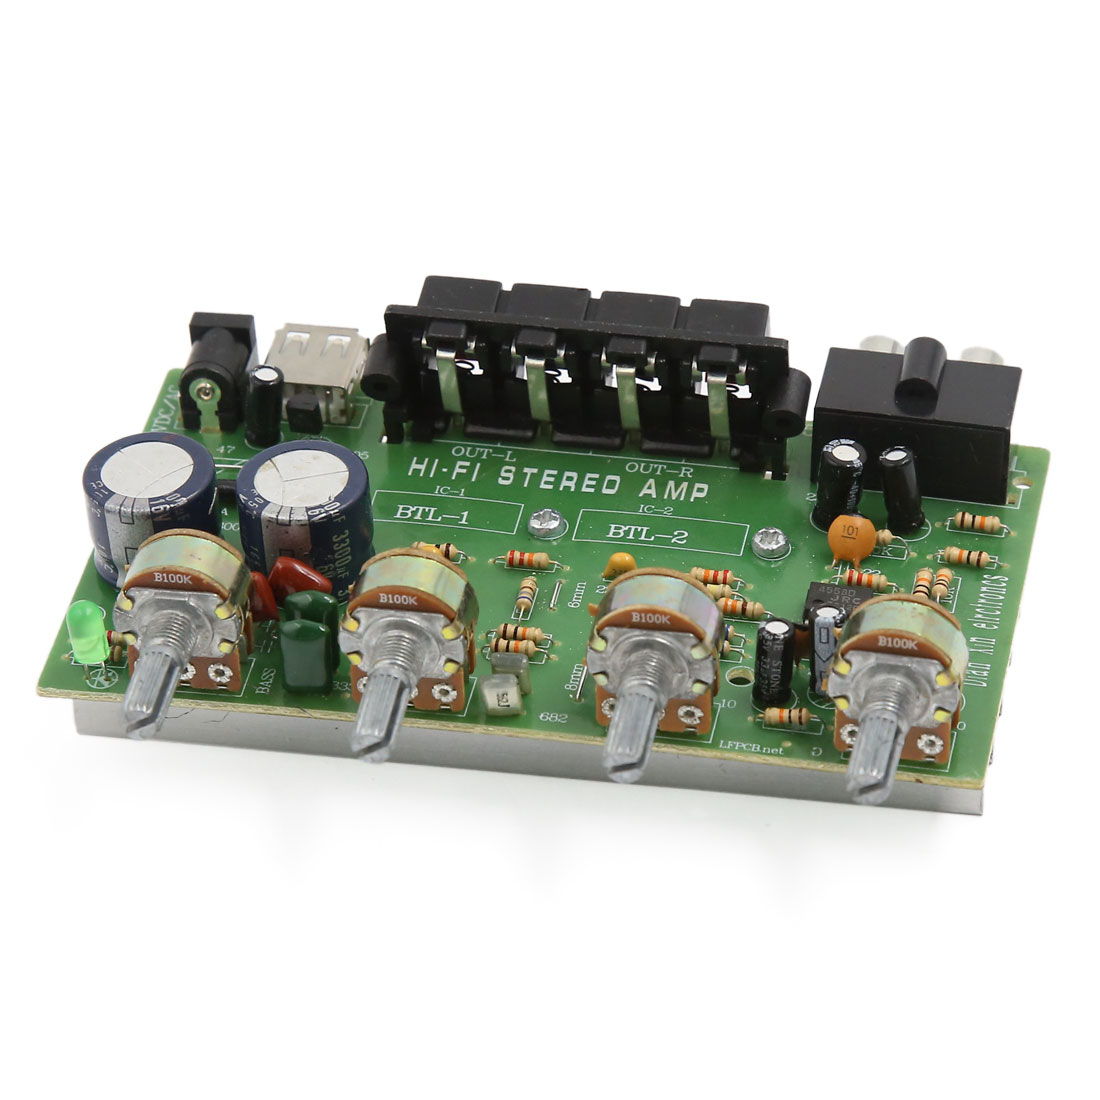 DC 12V-15V 200W Audio Stereo Power Amplifier Board for Vehicle Car